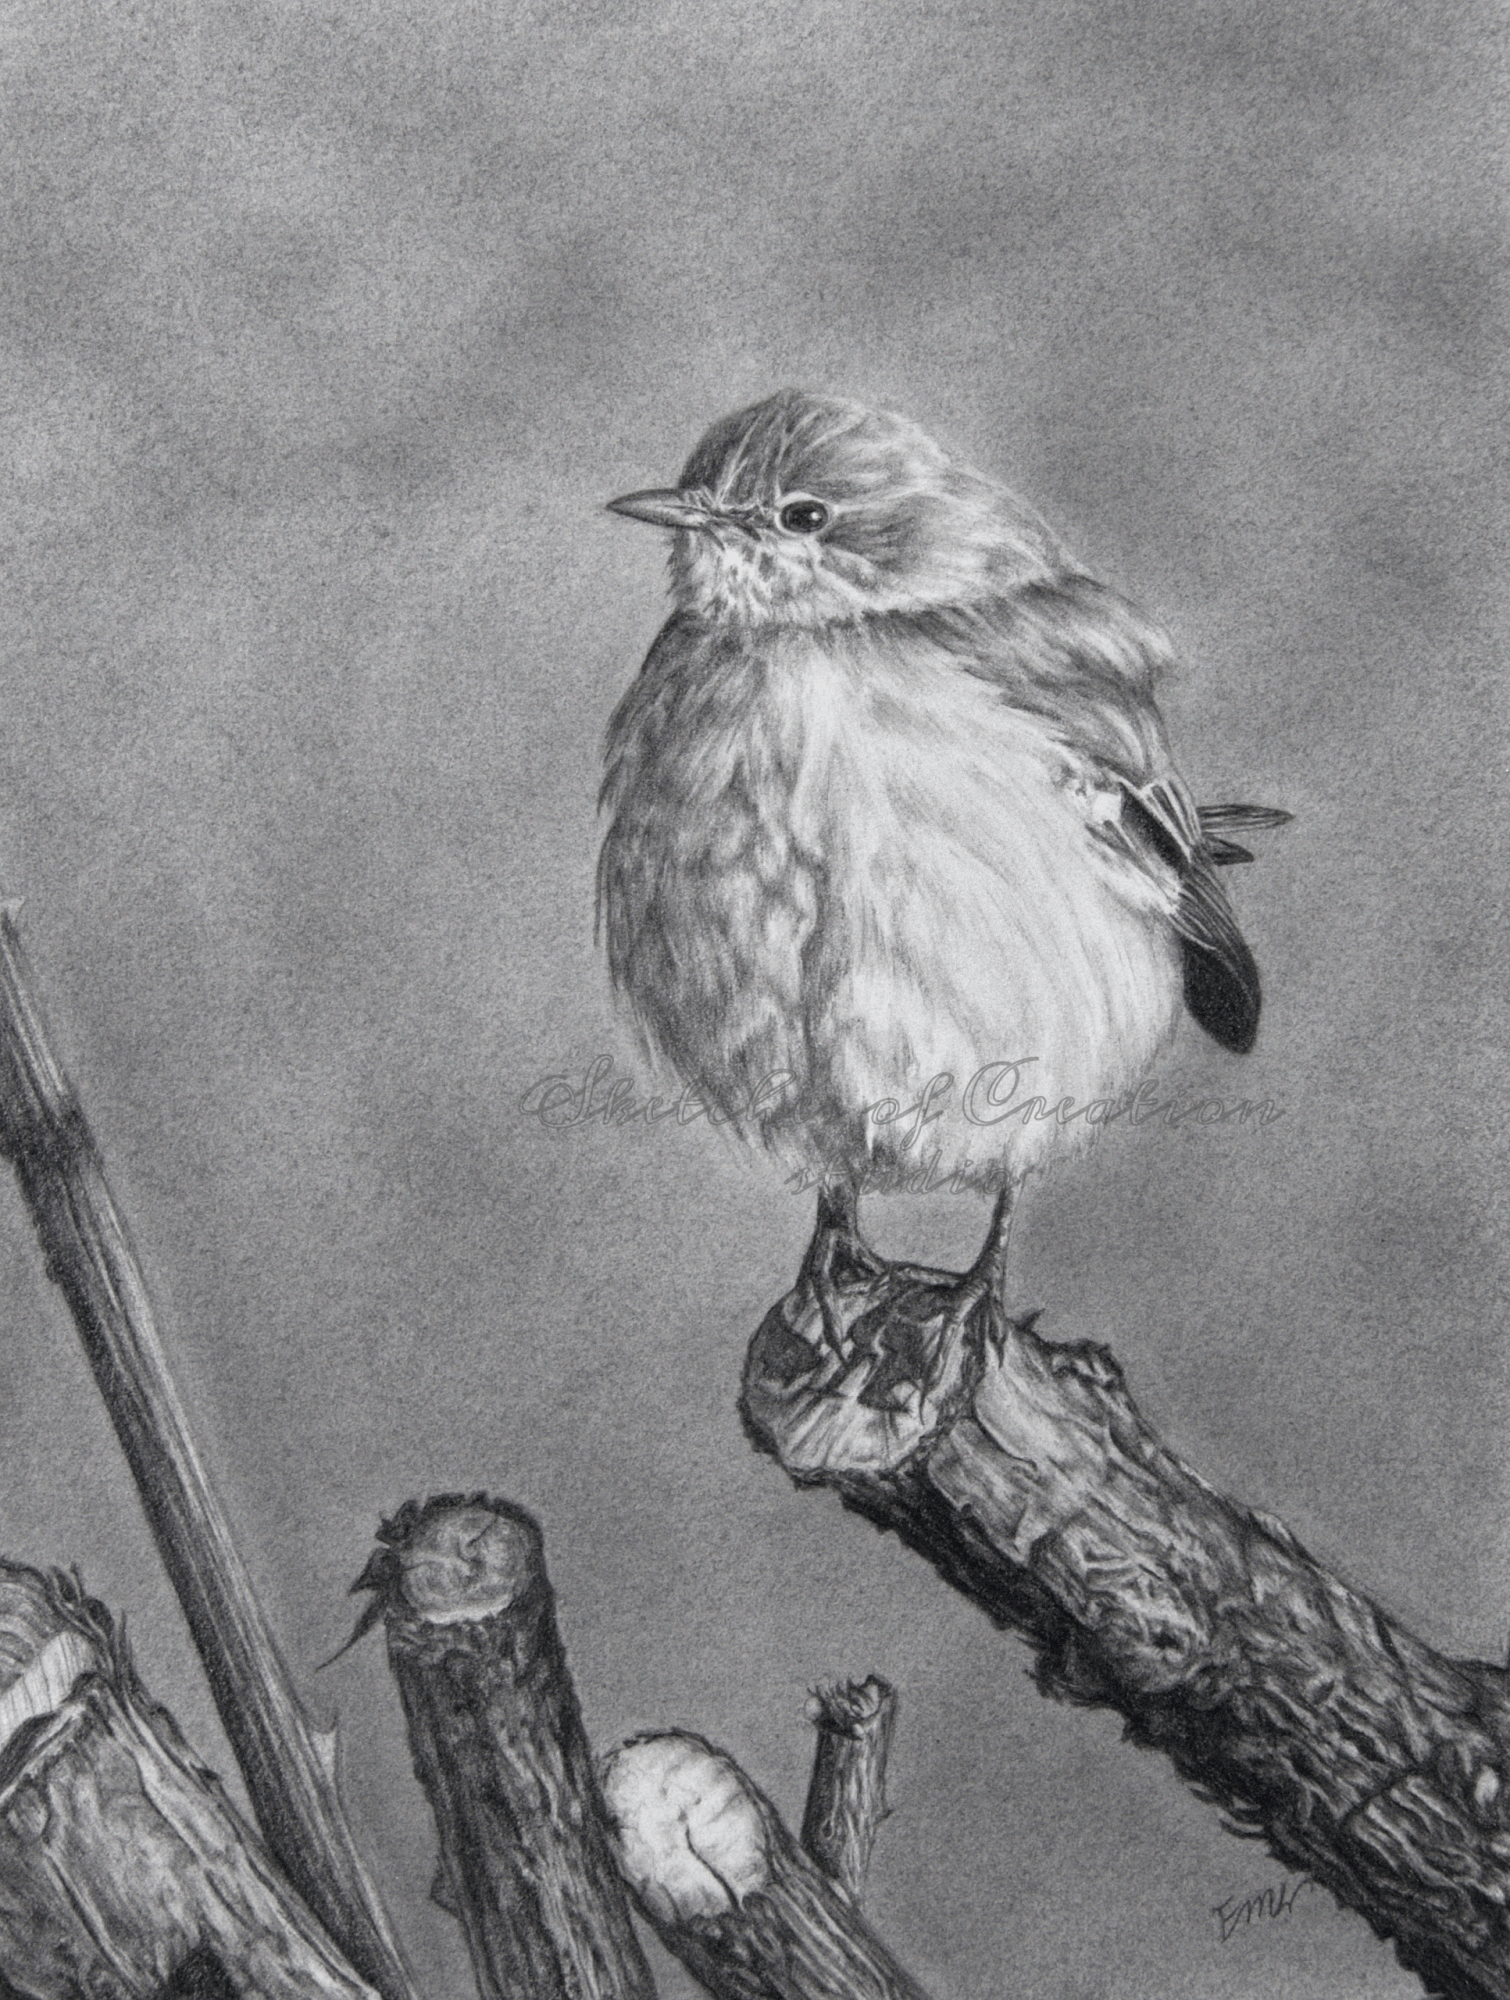 'Perching' a drawing of a Mockingbird perched atop a cut branch. 6x8 inches. Completed August 2020